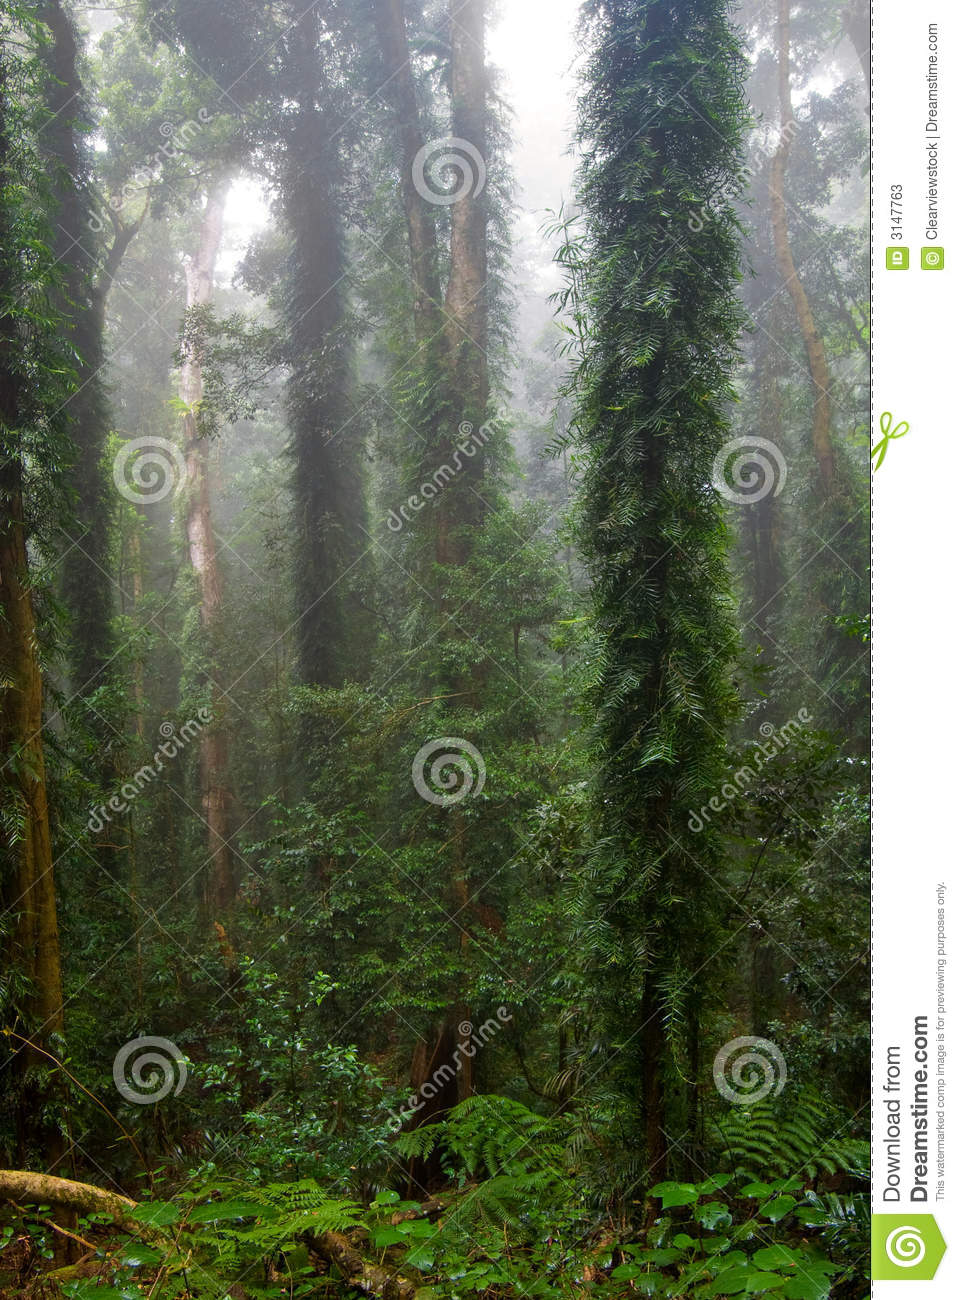 ... of nature in the dorrigo world heritage rainforest on a foggy day